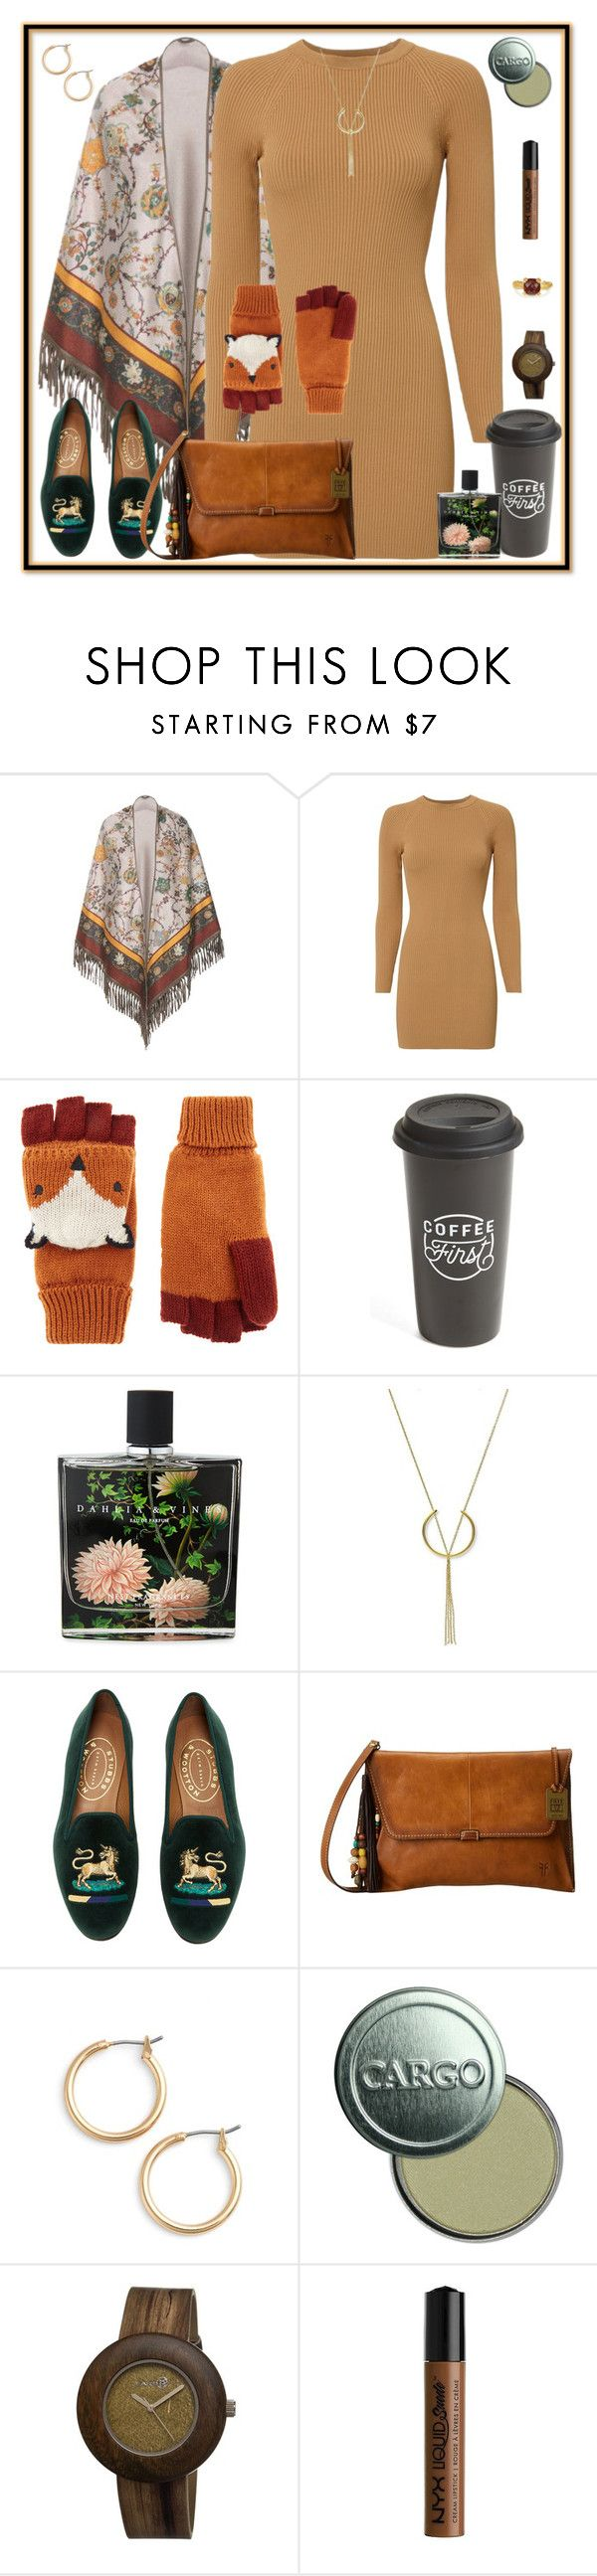 """""""Gear Up For Friday"""" by winscotthk ❤ liked on Polyvore featuring Loro Piana, A.L.C., Accessorize, The Created Co., Nest Fragrances, FOSSIL, Stubbs & Wootton, Frye, Nordstrom and CARGO"""